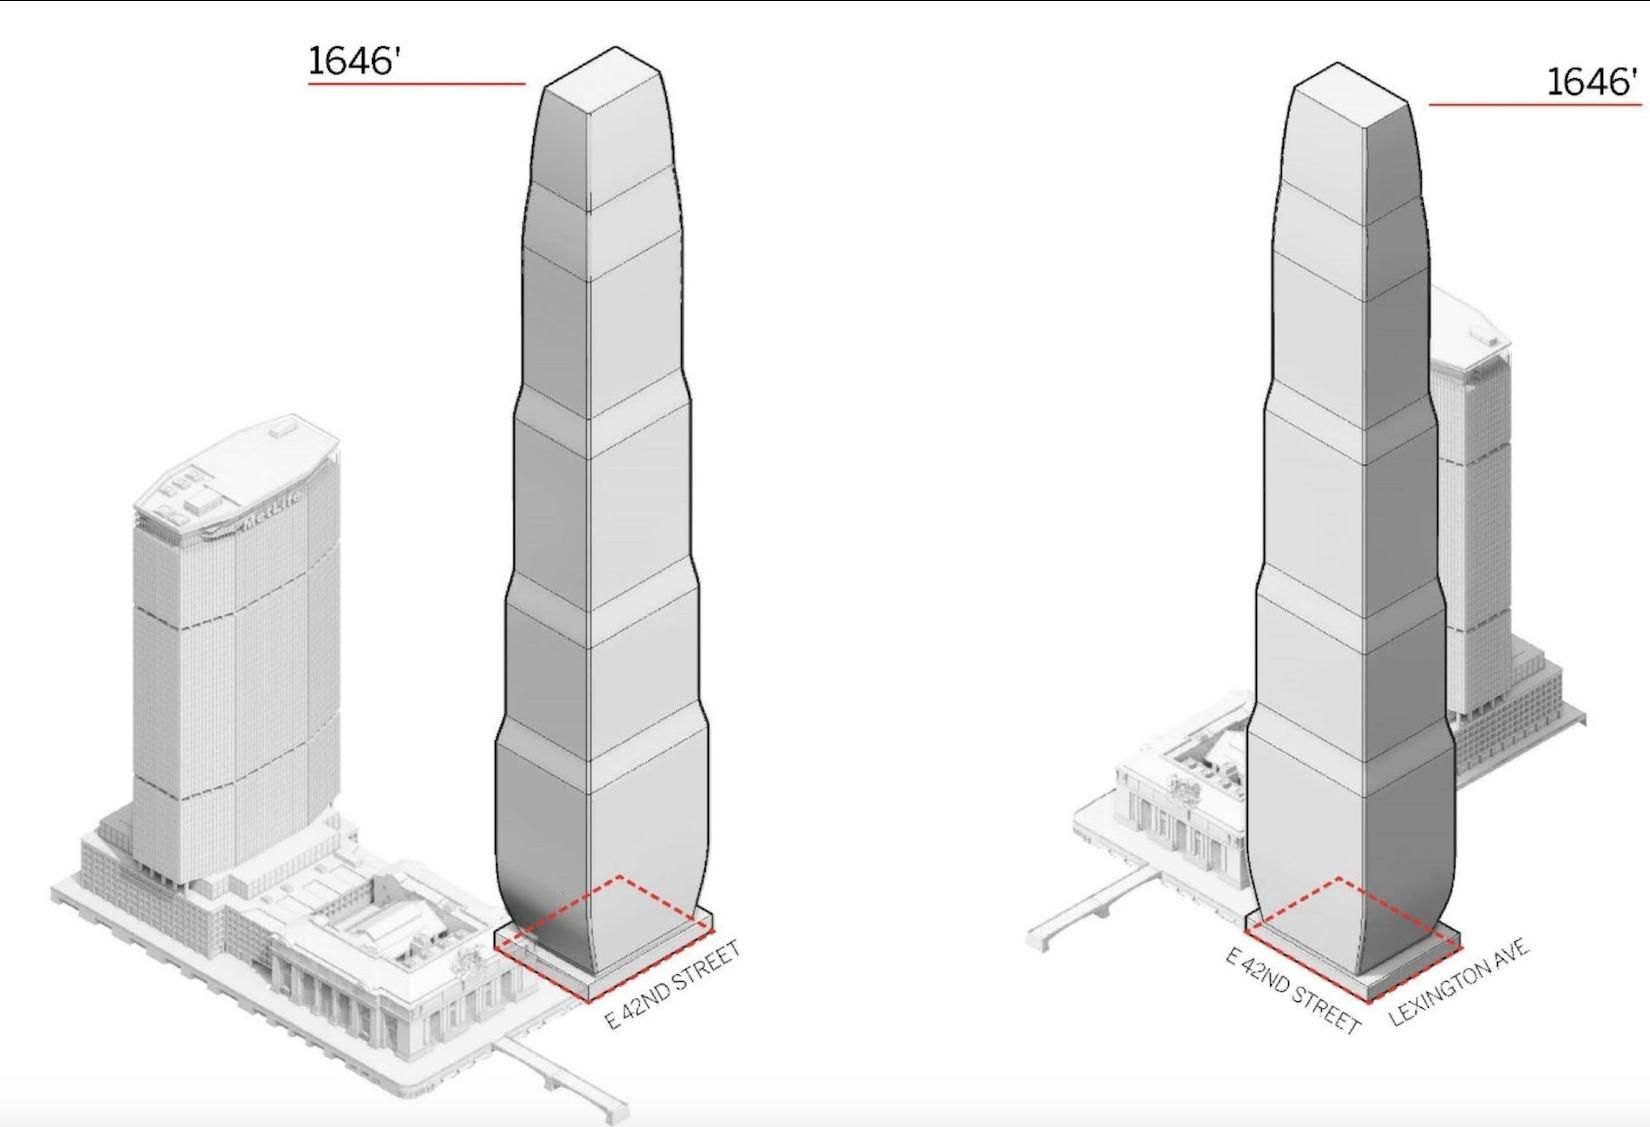 1,600-Foot Office And Hotel Tower Planned Next To Grand Central